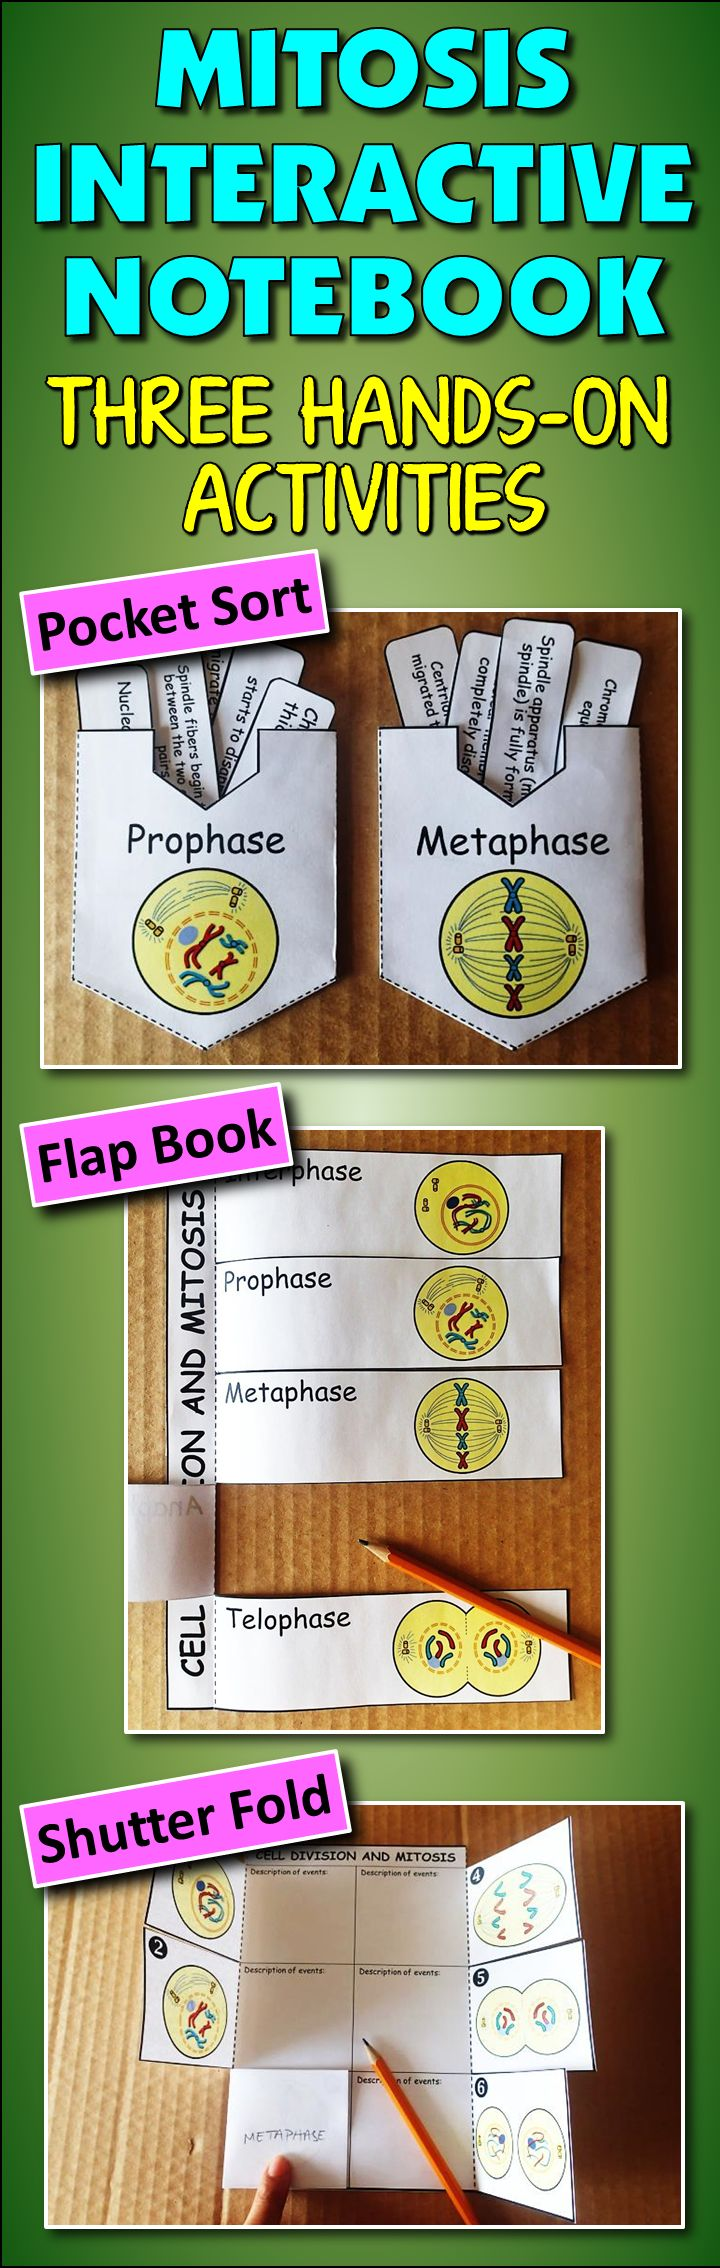 Gr.6-12. Get your students into mitosis!  Students have a fun time reinforcing their understanding of mitosis by doing these three hands on activities. By the end of these activities, students should understand mitosis inside and out.